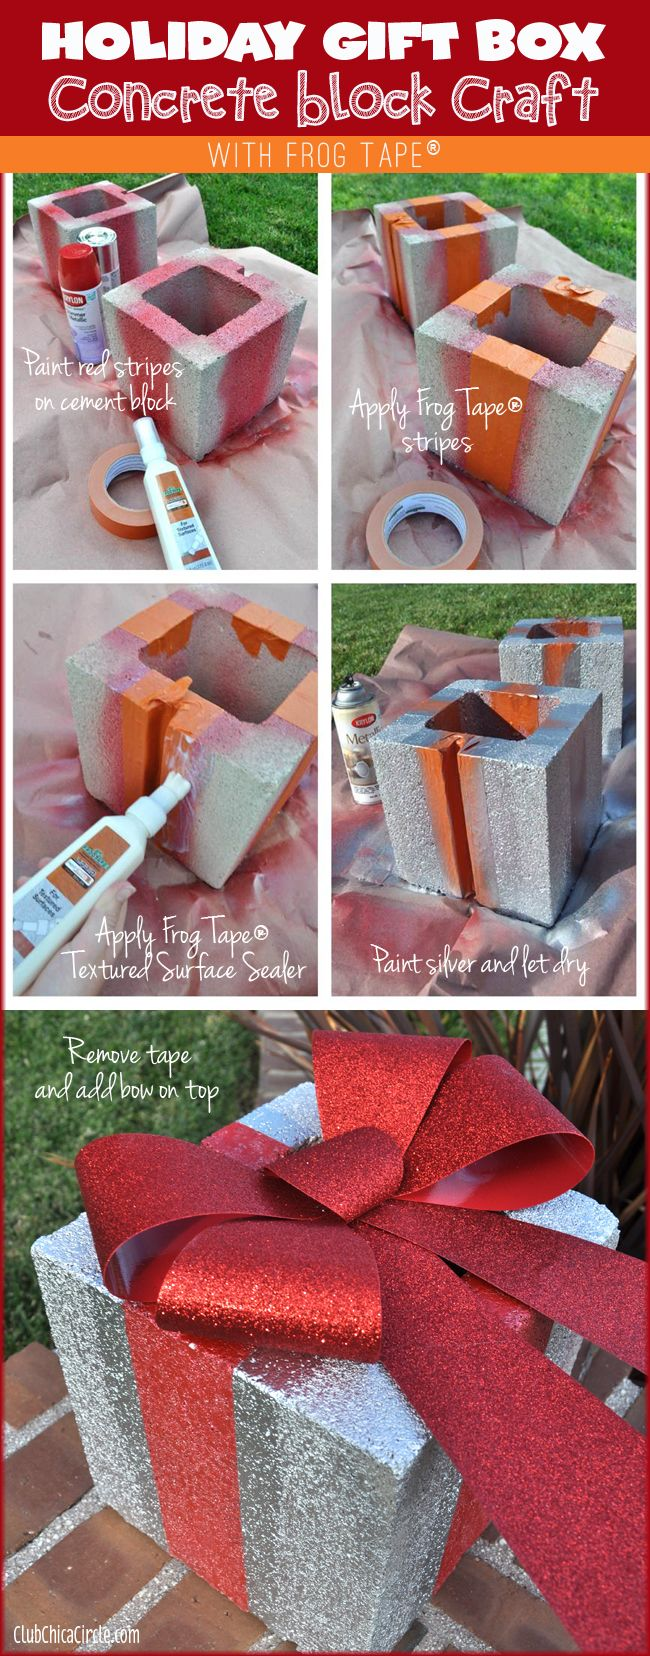 4f4aebad103 Holiday Gift Box Concrete Brick Tutorial  It s a really great way to add  some fun holiday decor to the outside of your home. Turned simple concrete  blocks ...